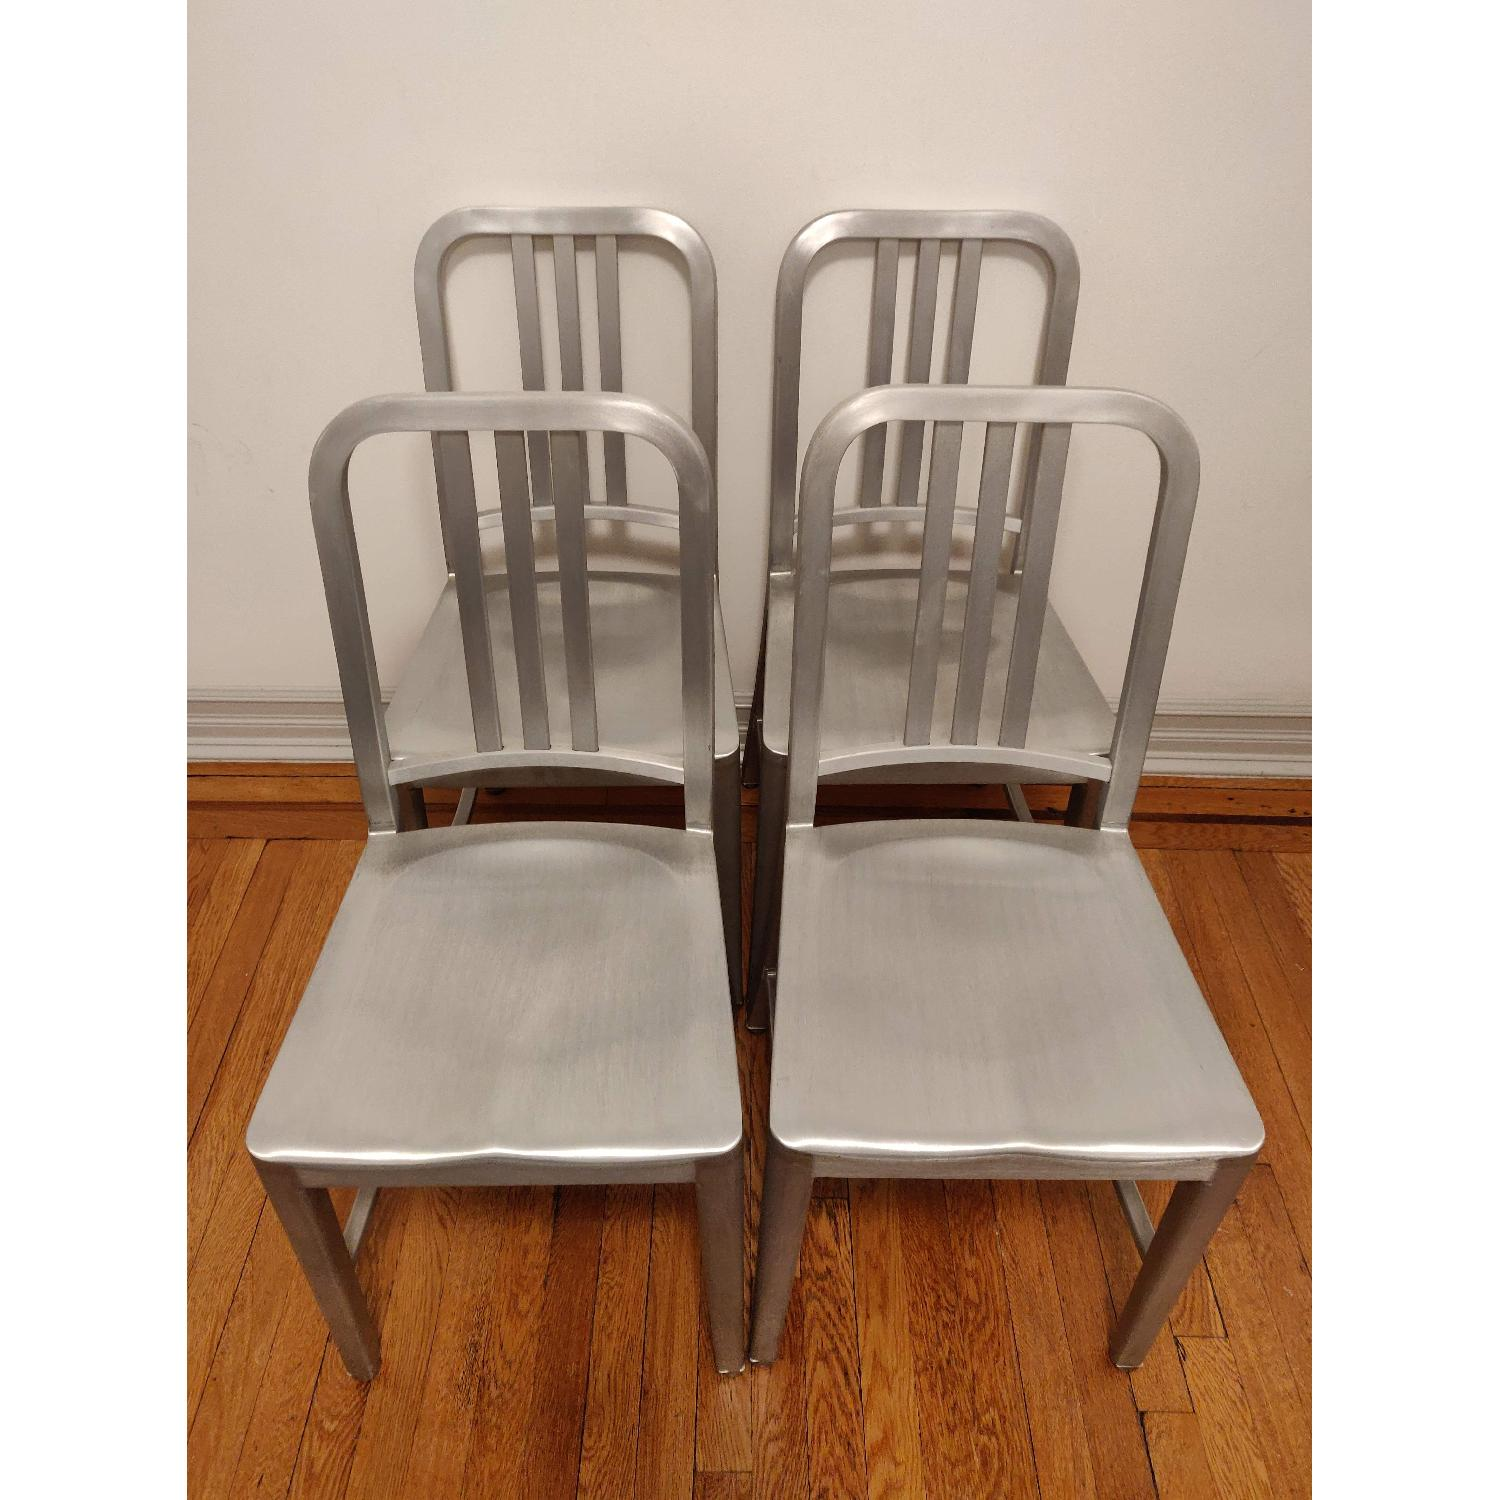 Vintage 90s Emeco Navy Chairs - image-1